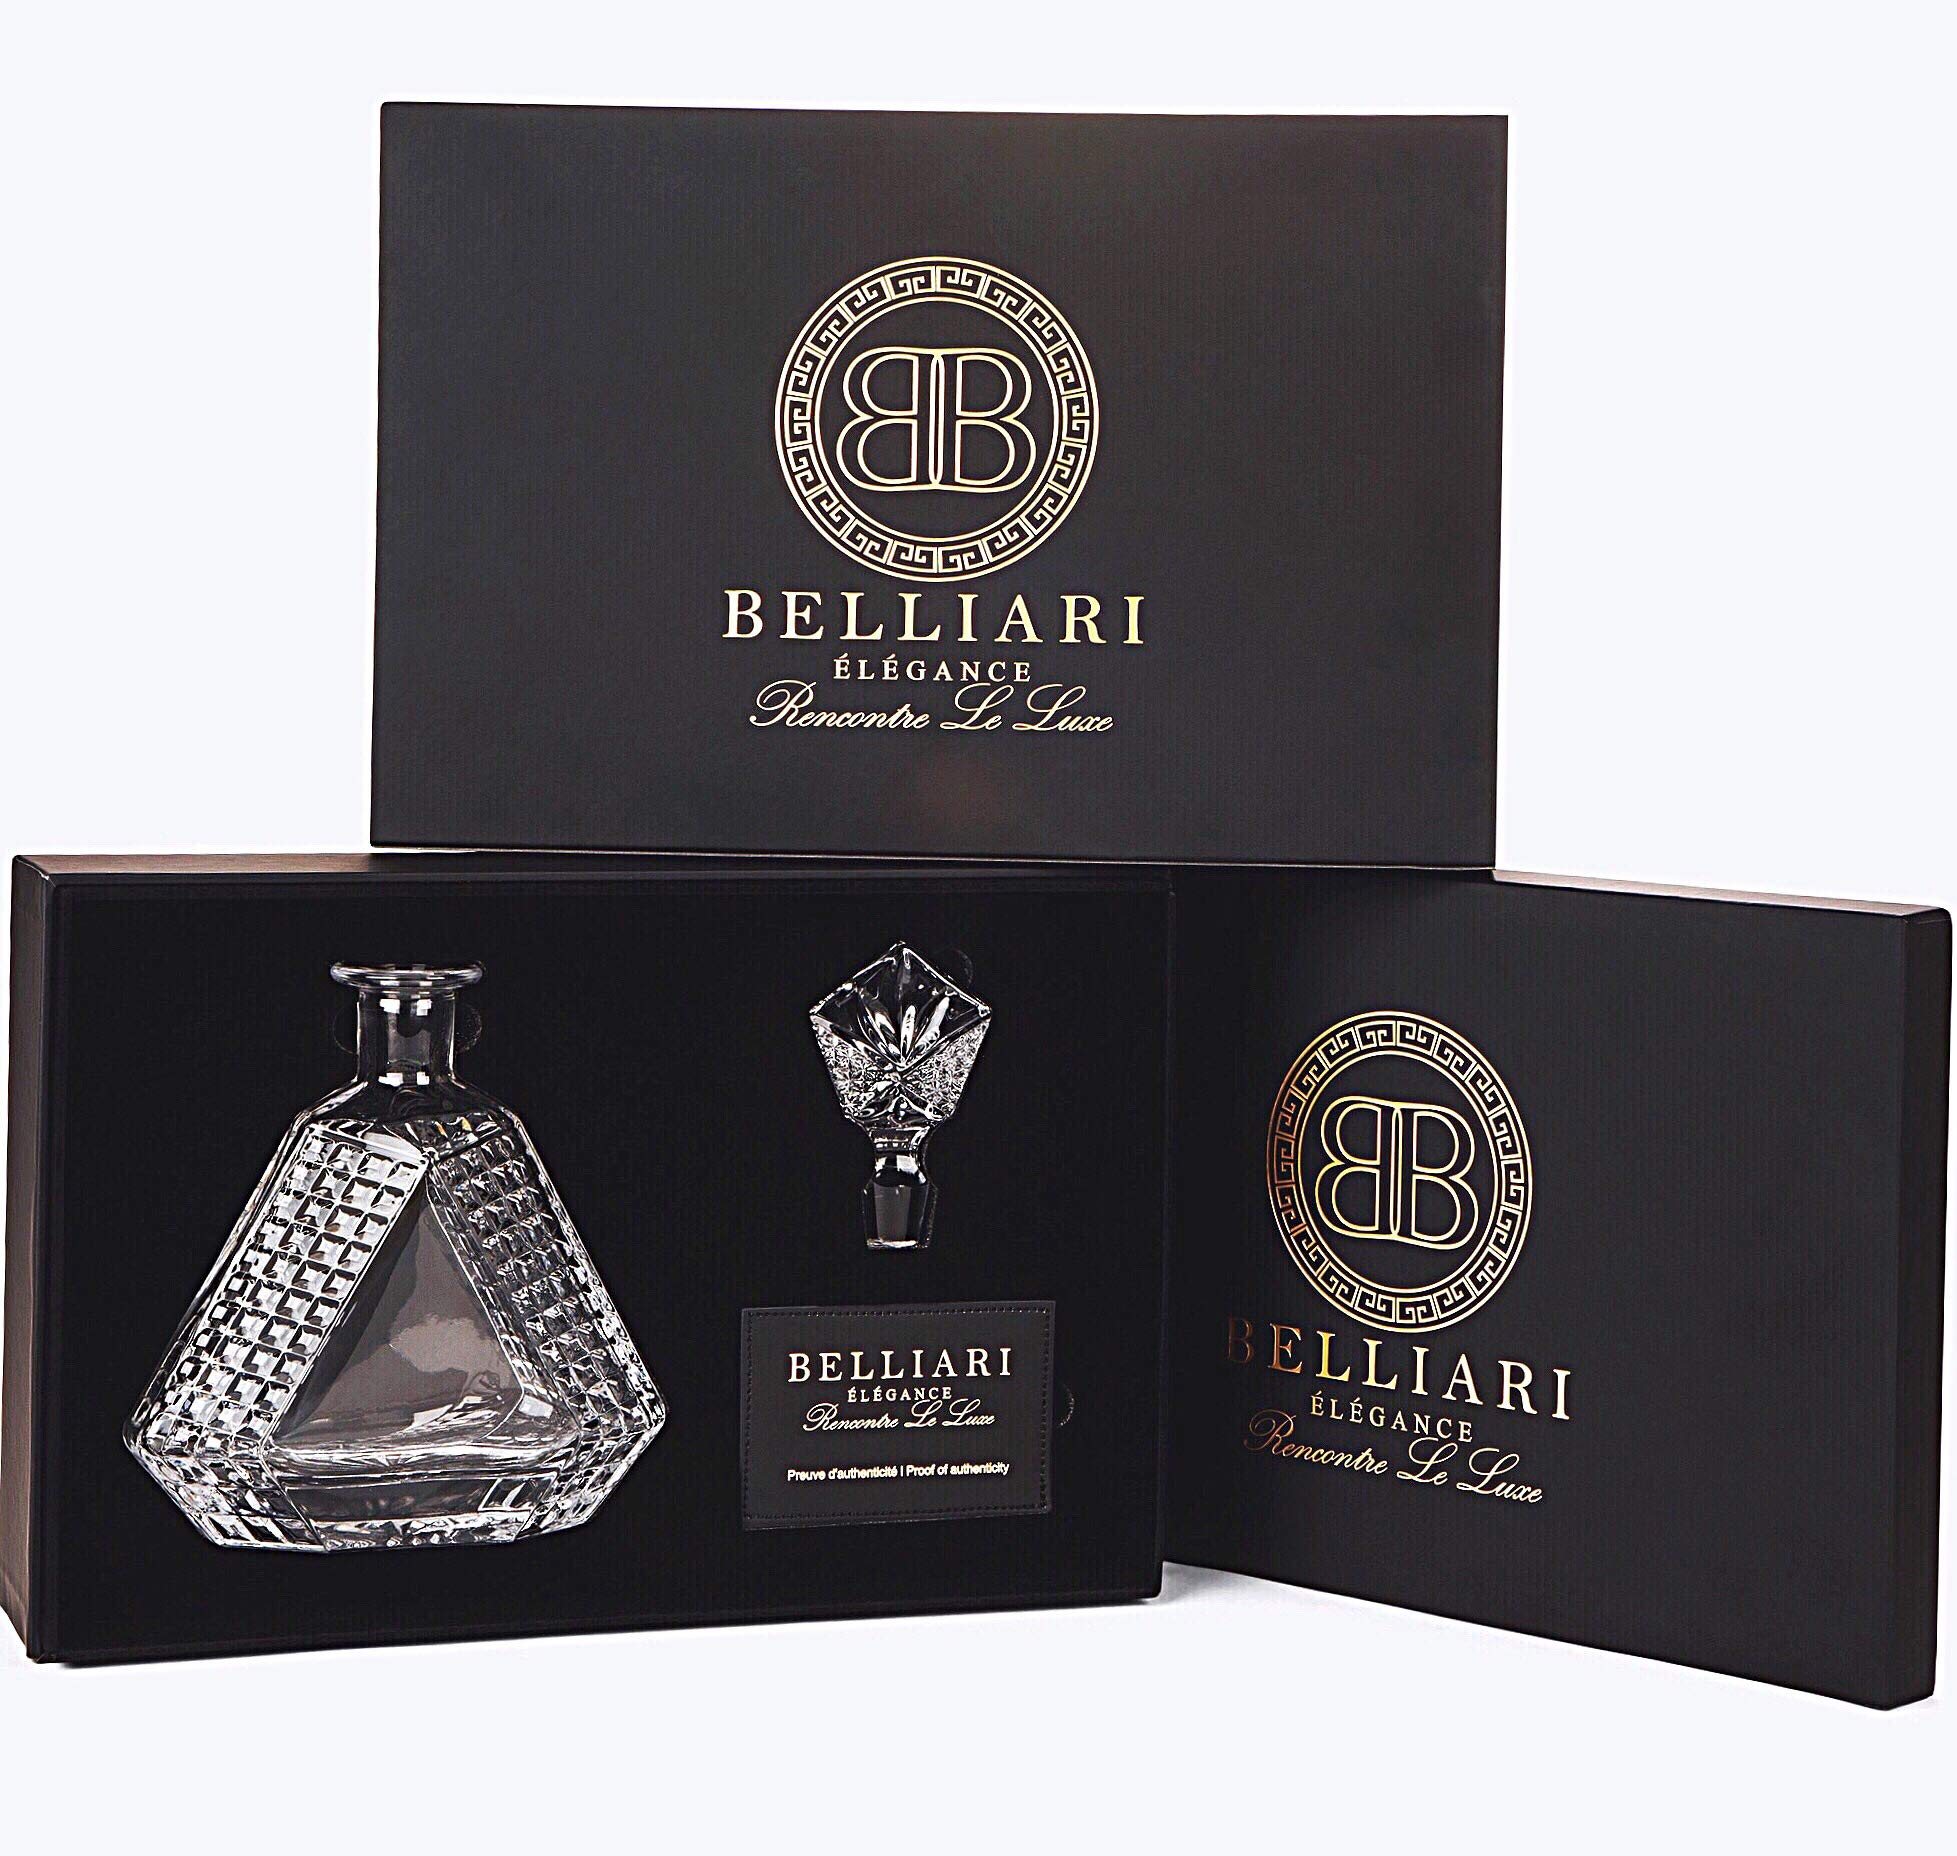 BELLIARI - Crystal Whiskey Decanter With Elegant Designer Gift Box - Diamond Whiskey Decanters - Fathers Day Gifts - 750ml Personalized Decanter For Liquor, Bourbon, Whisky, Scotch With Glass Stopper